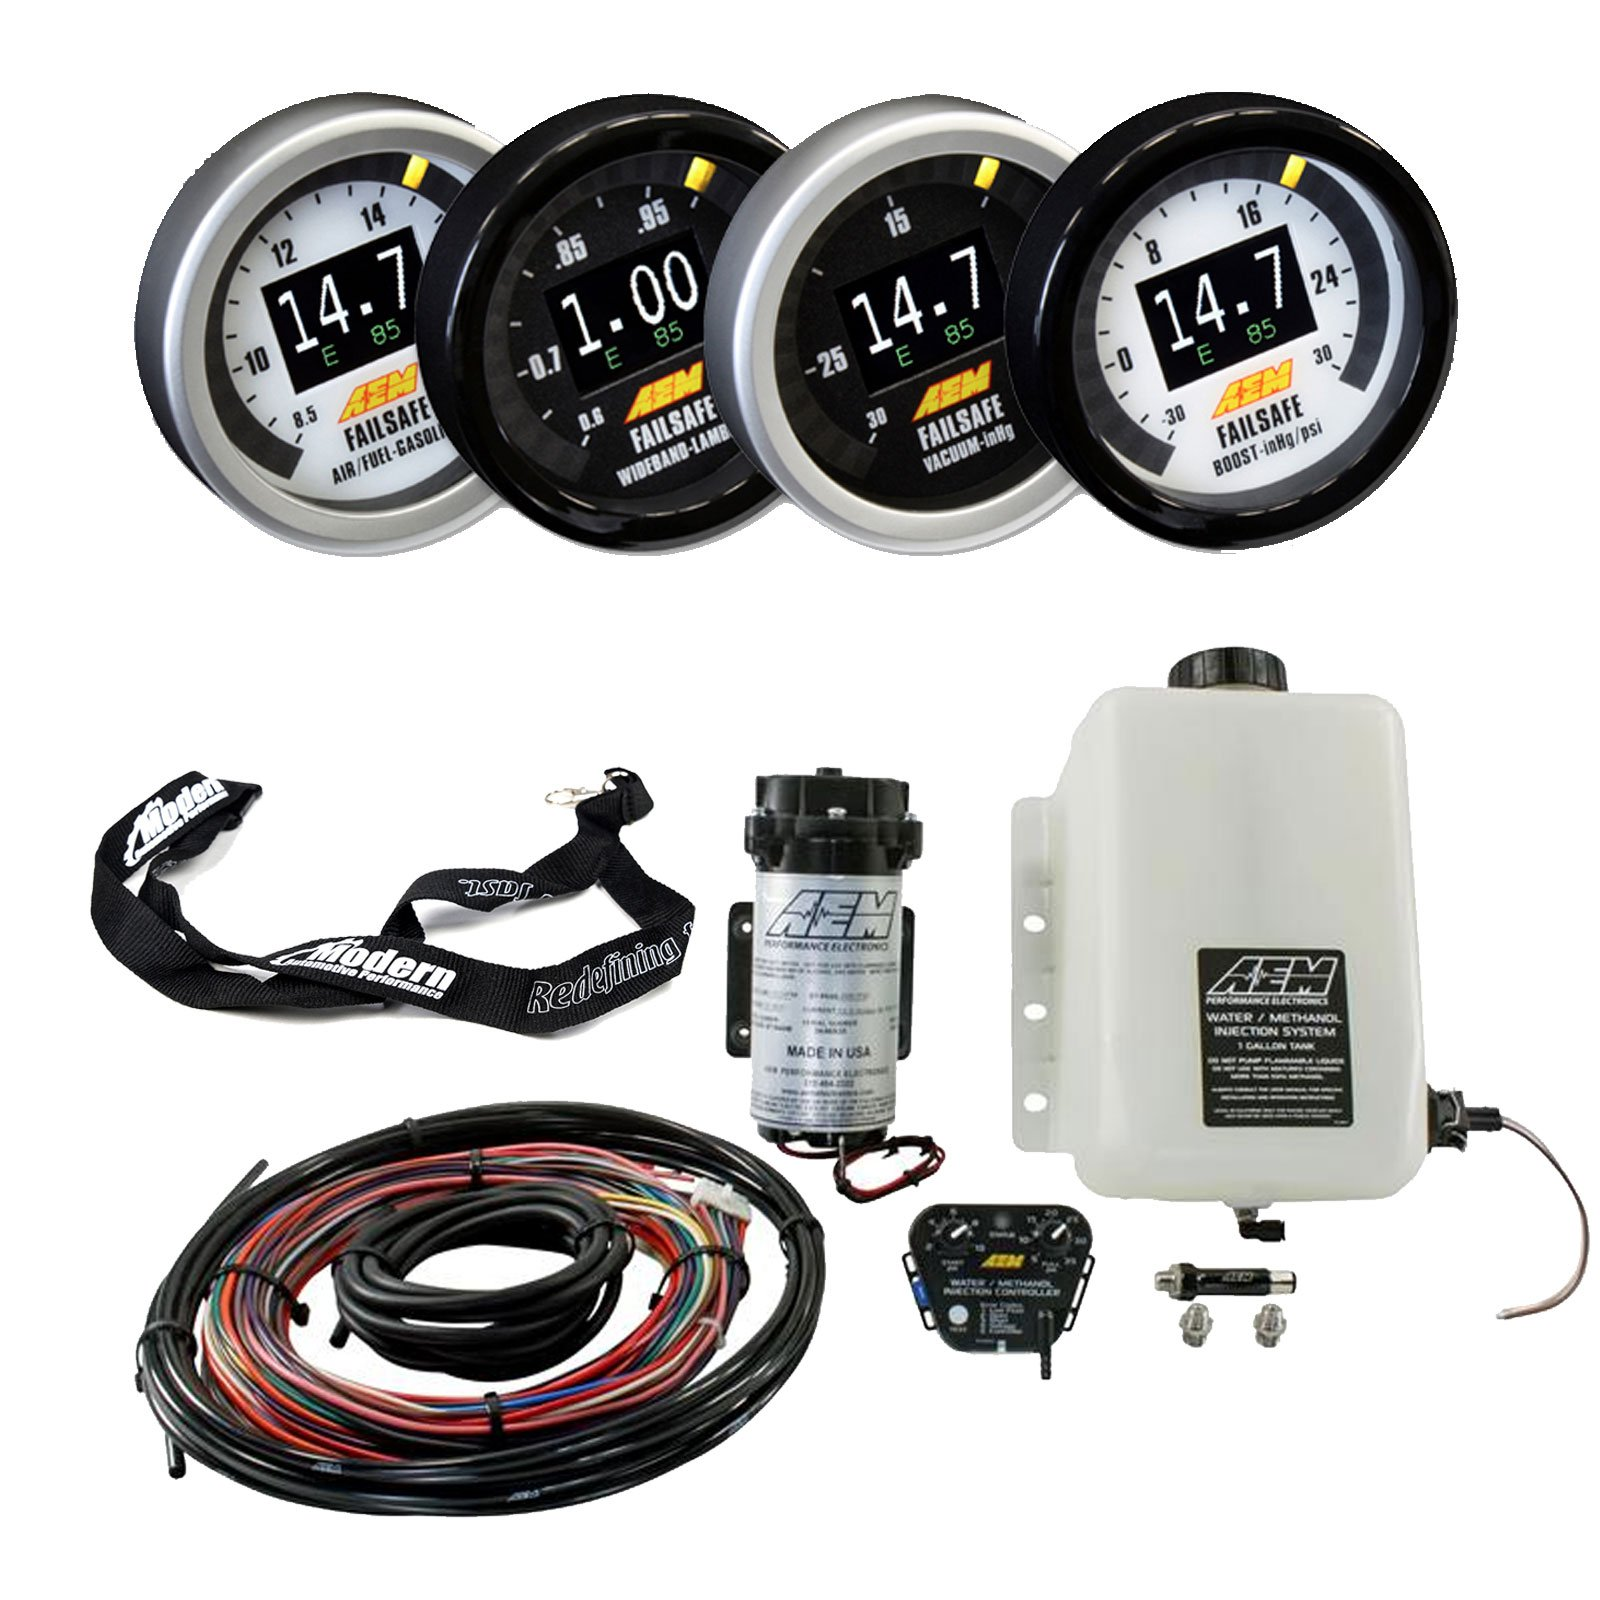 AEM Water Methanol Injection Kit & 52mm Flex Fuel Failsafe Gauge with Sensor & MAPerformance Lanyard